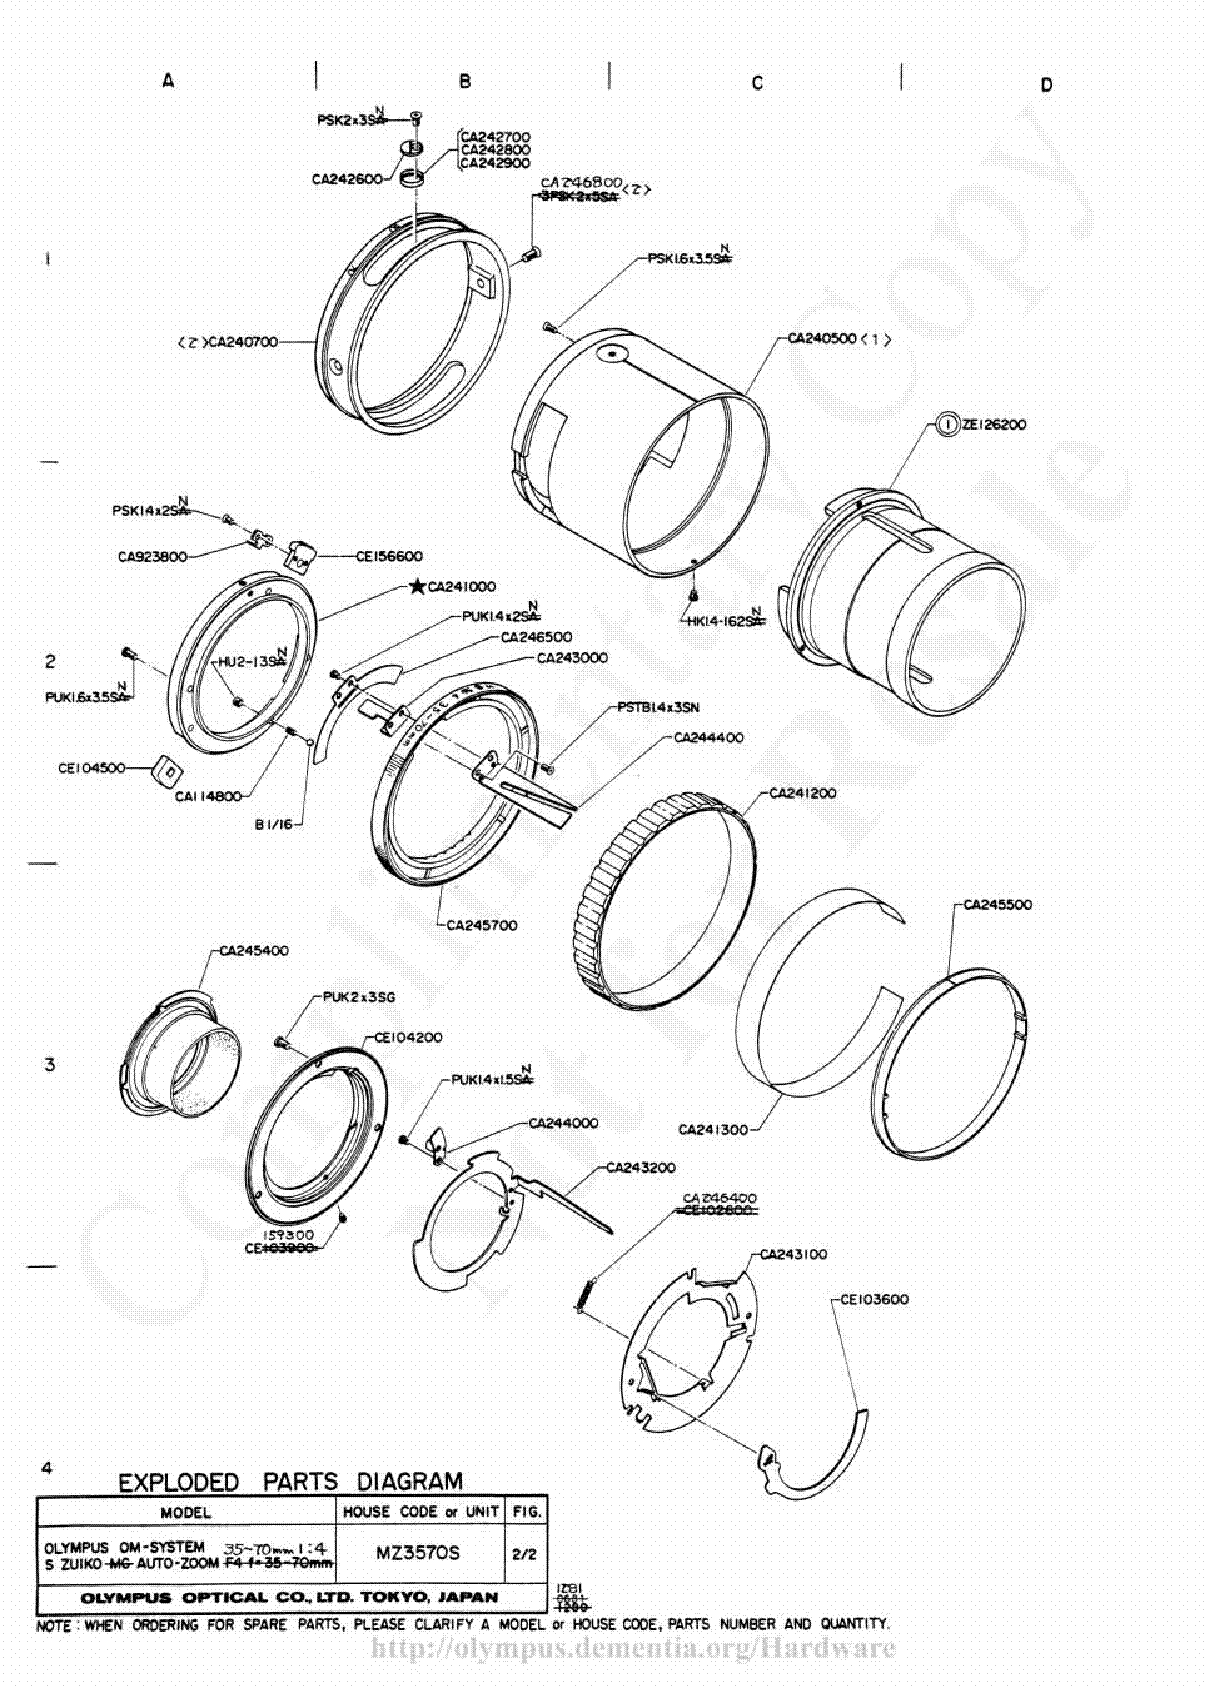 Olympus 35 70mm F4 Exploded Parts Diagram Service Manual